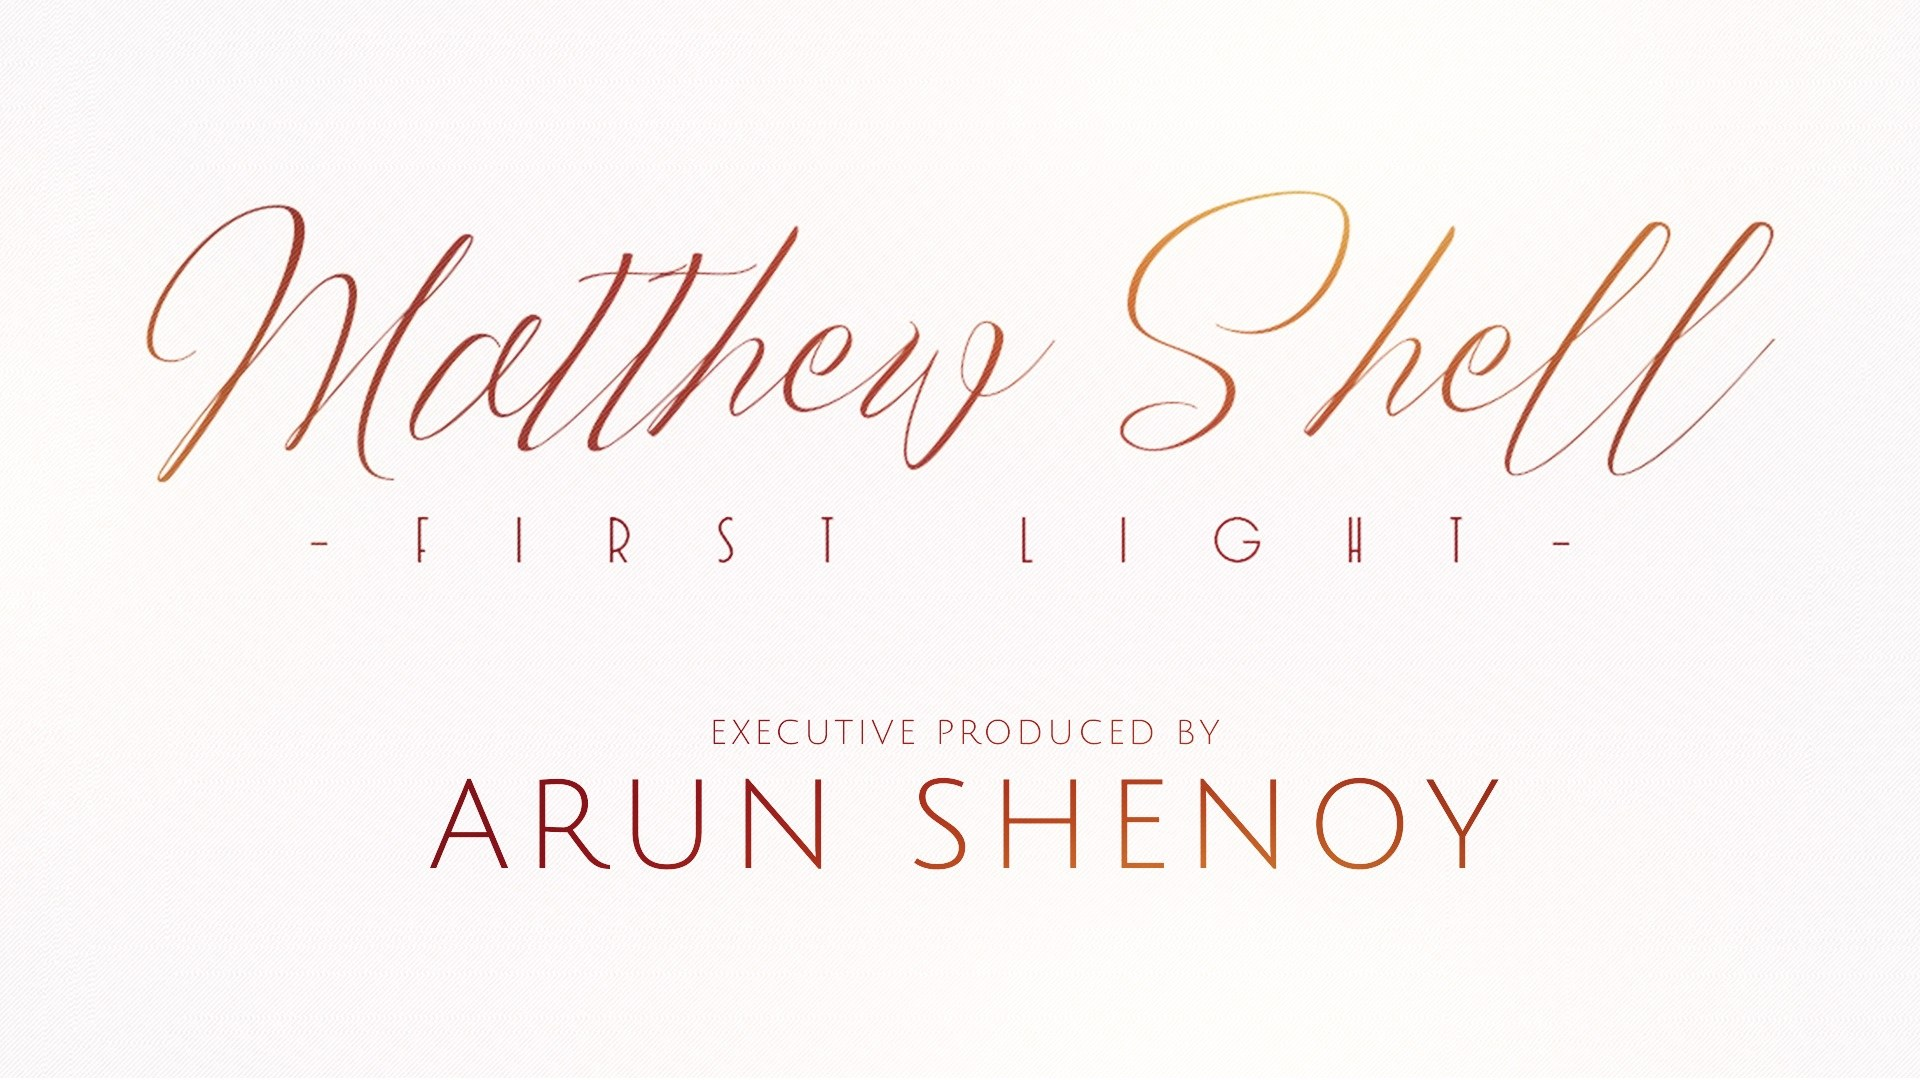 First Light Executive Produced Arun Shenoy